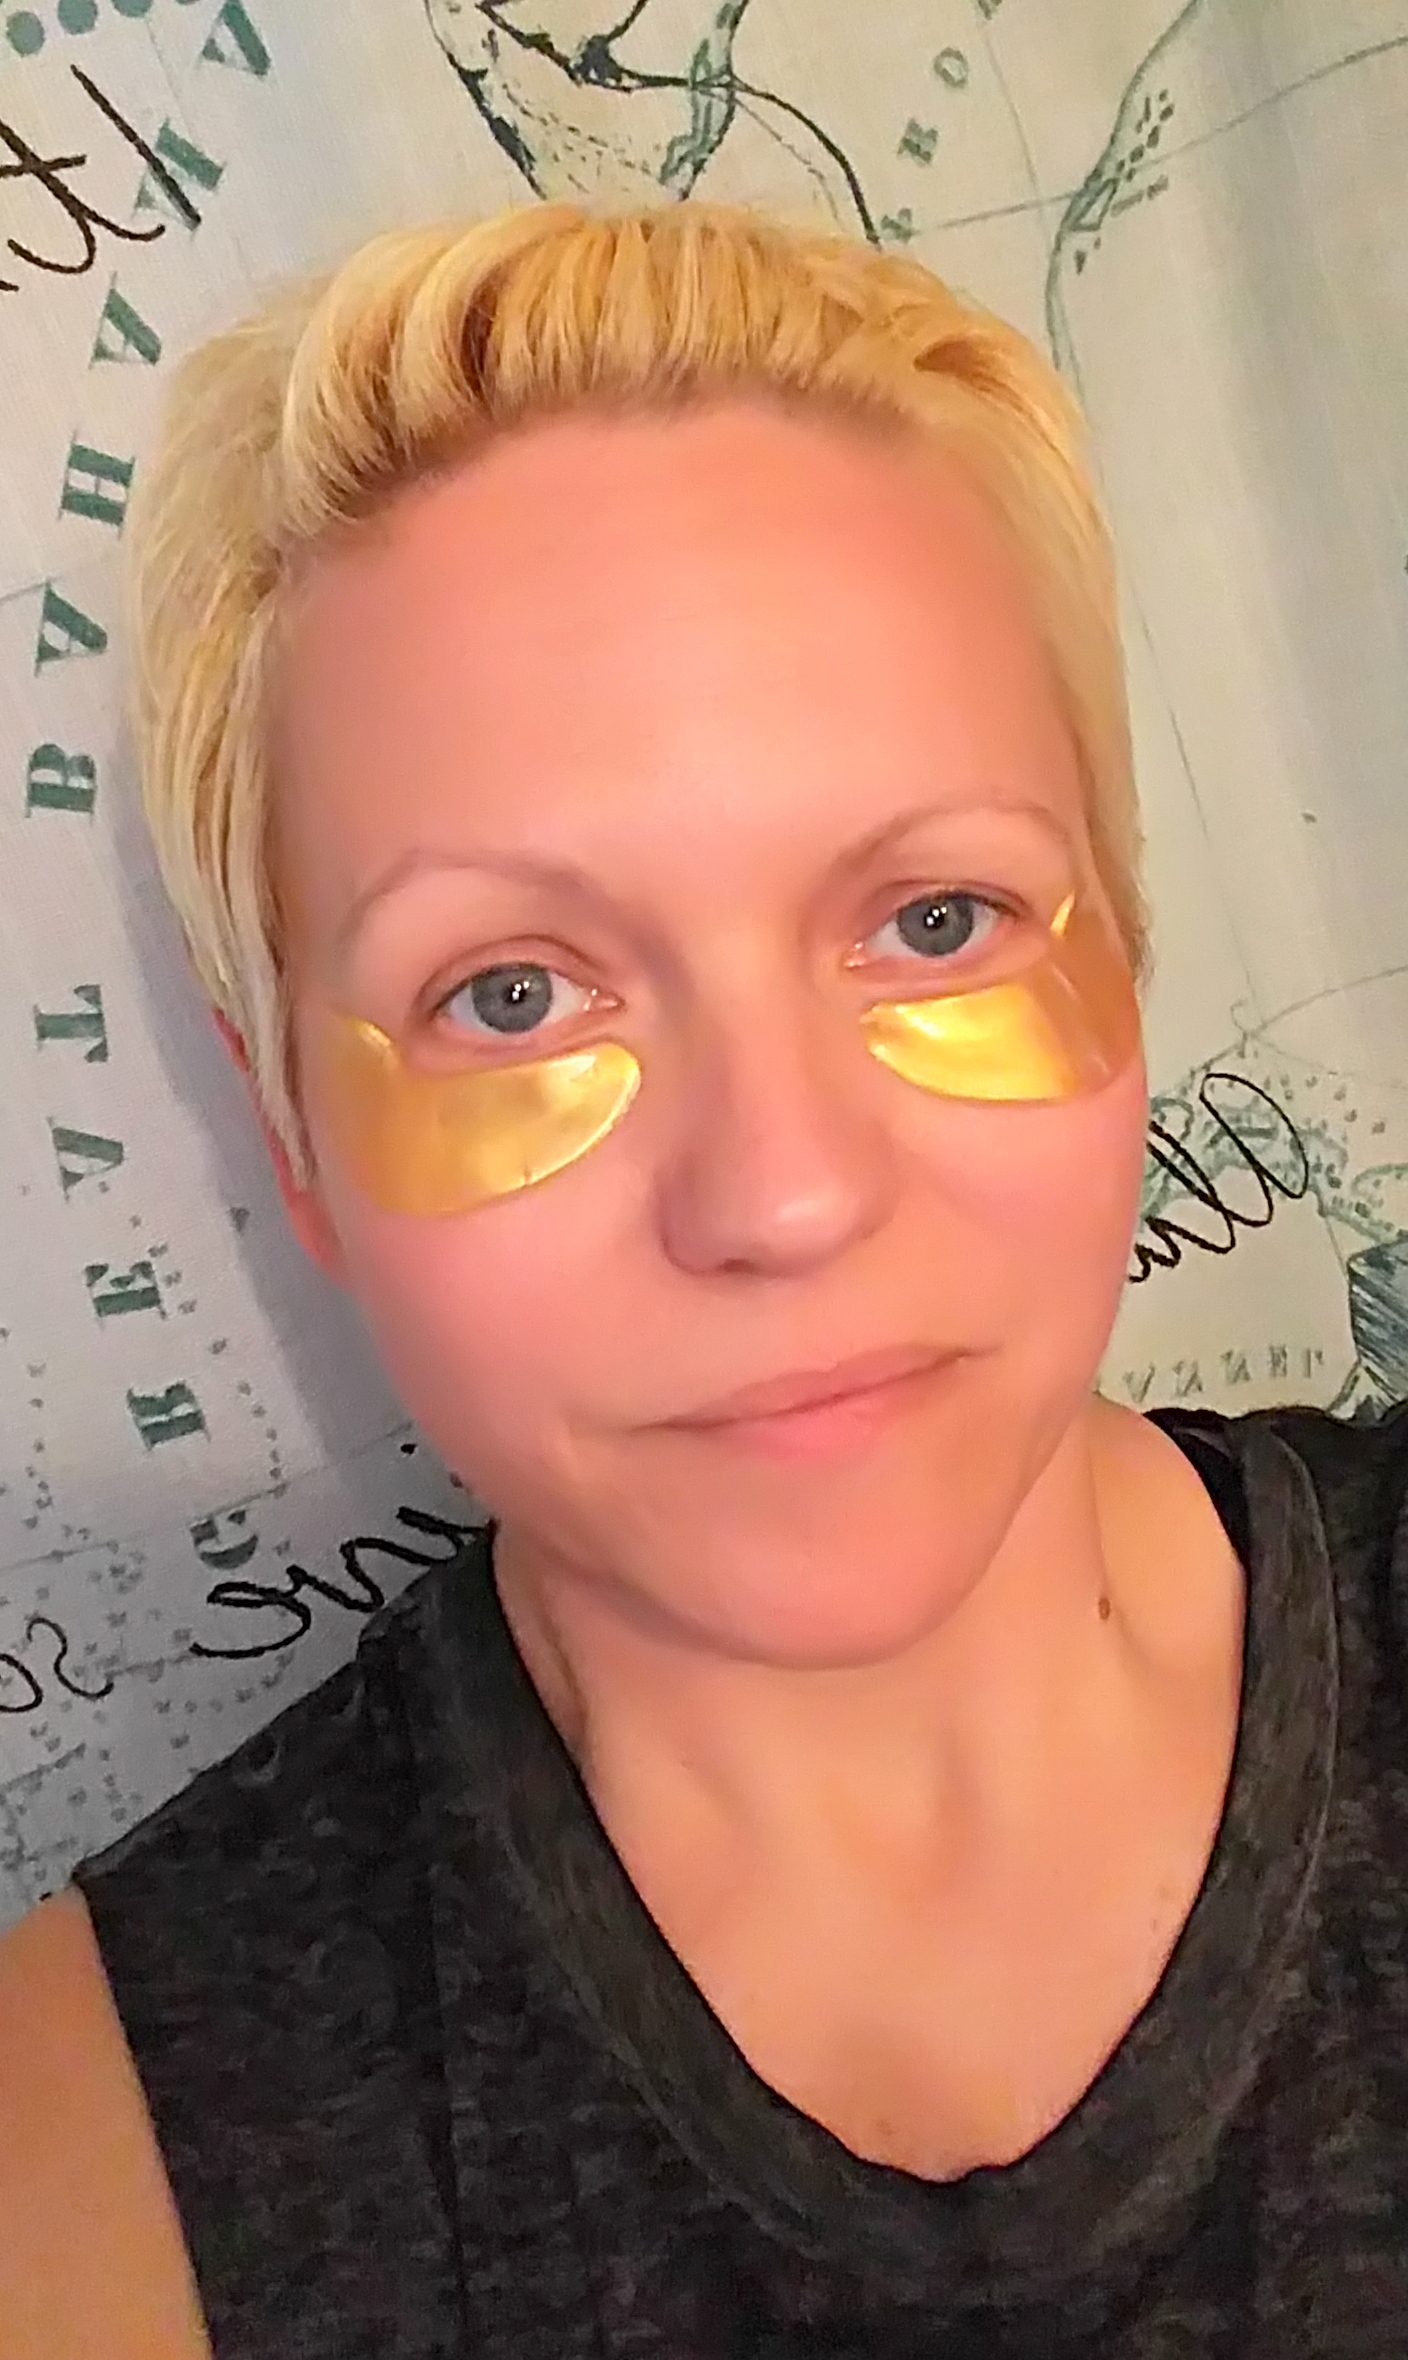 How to US 24k Gold Stem Cell Eye Mask